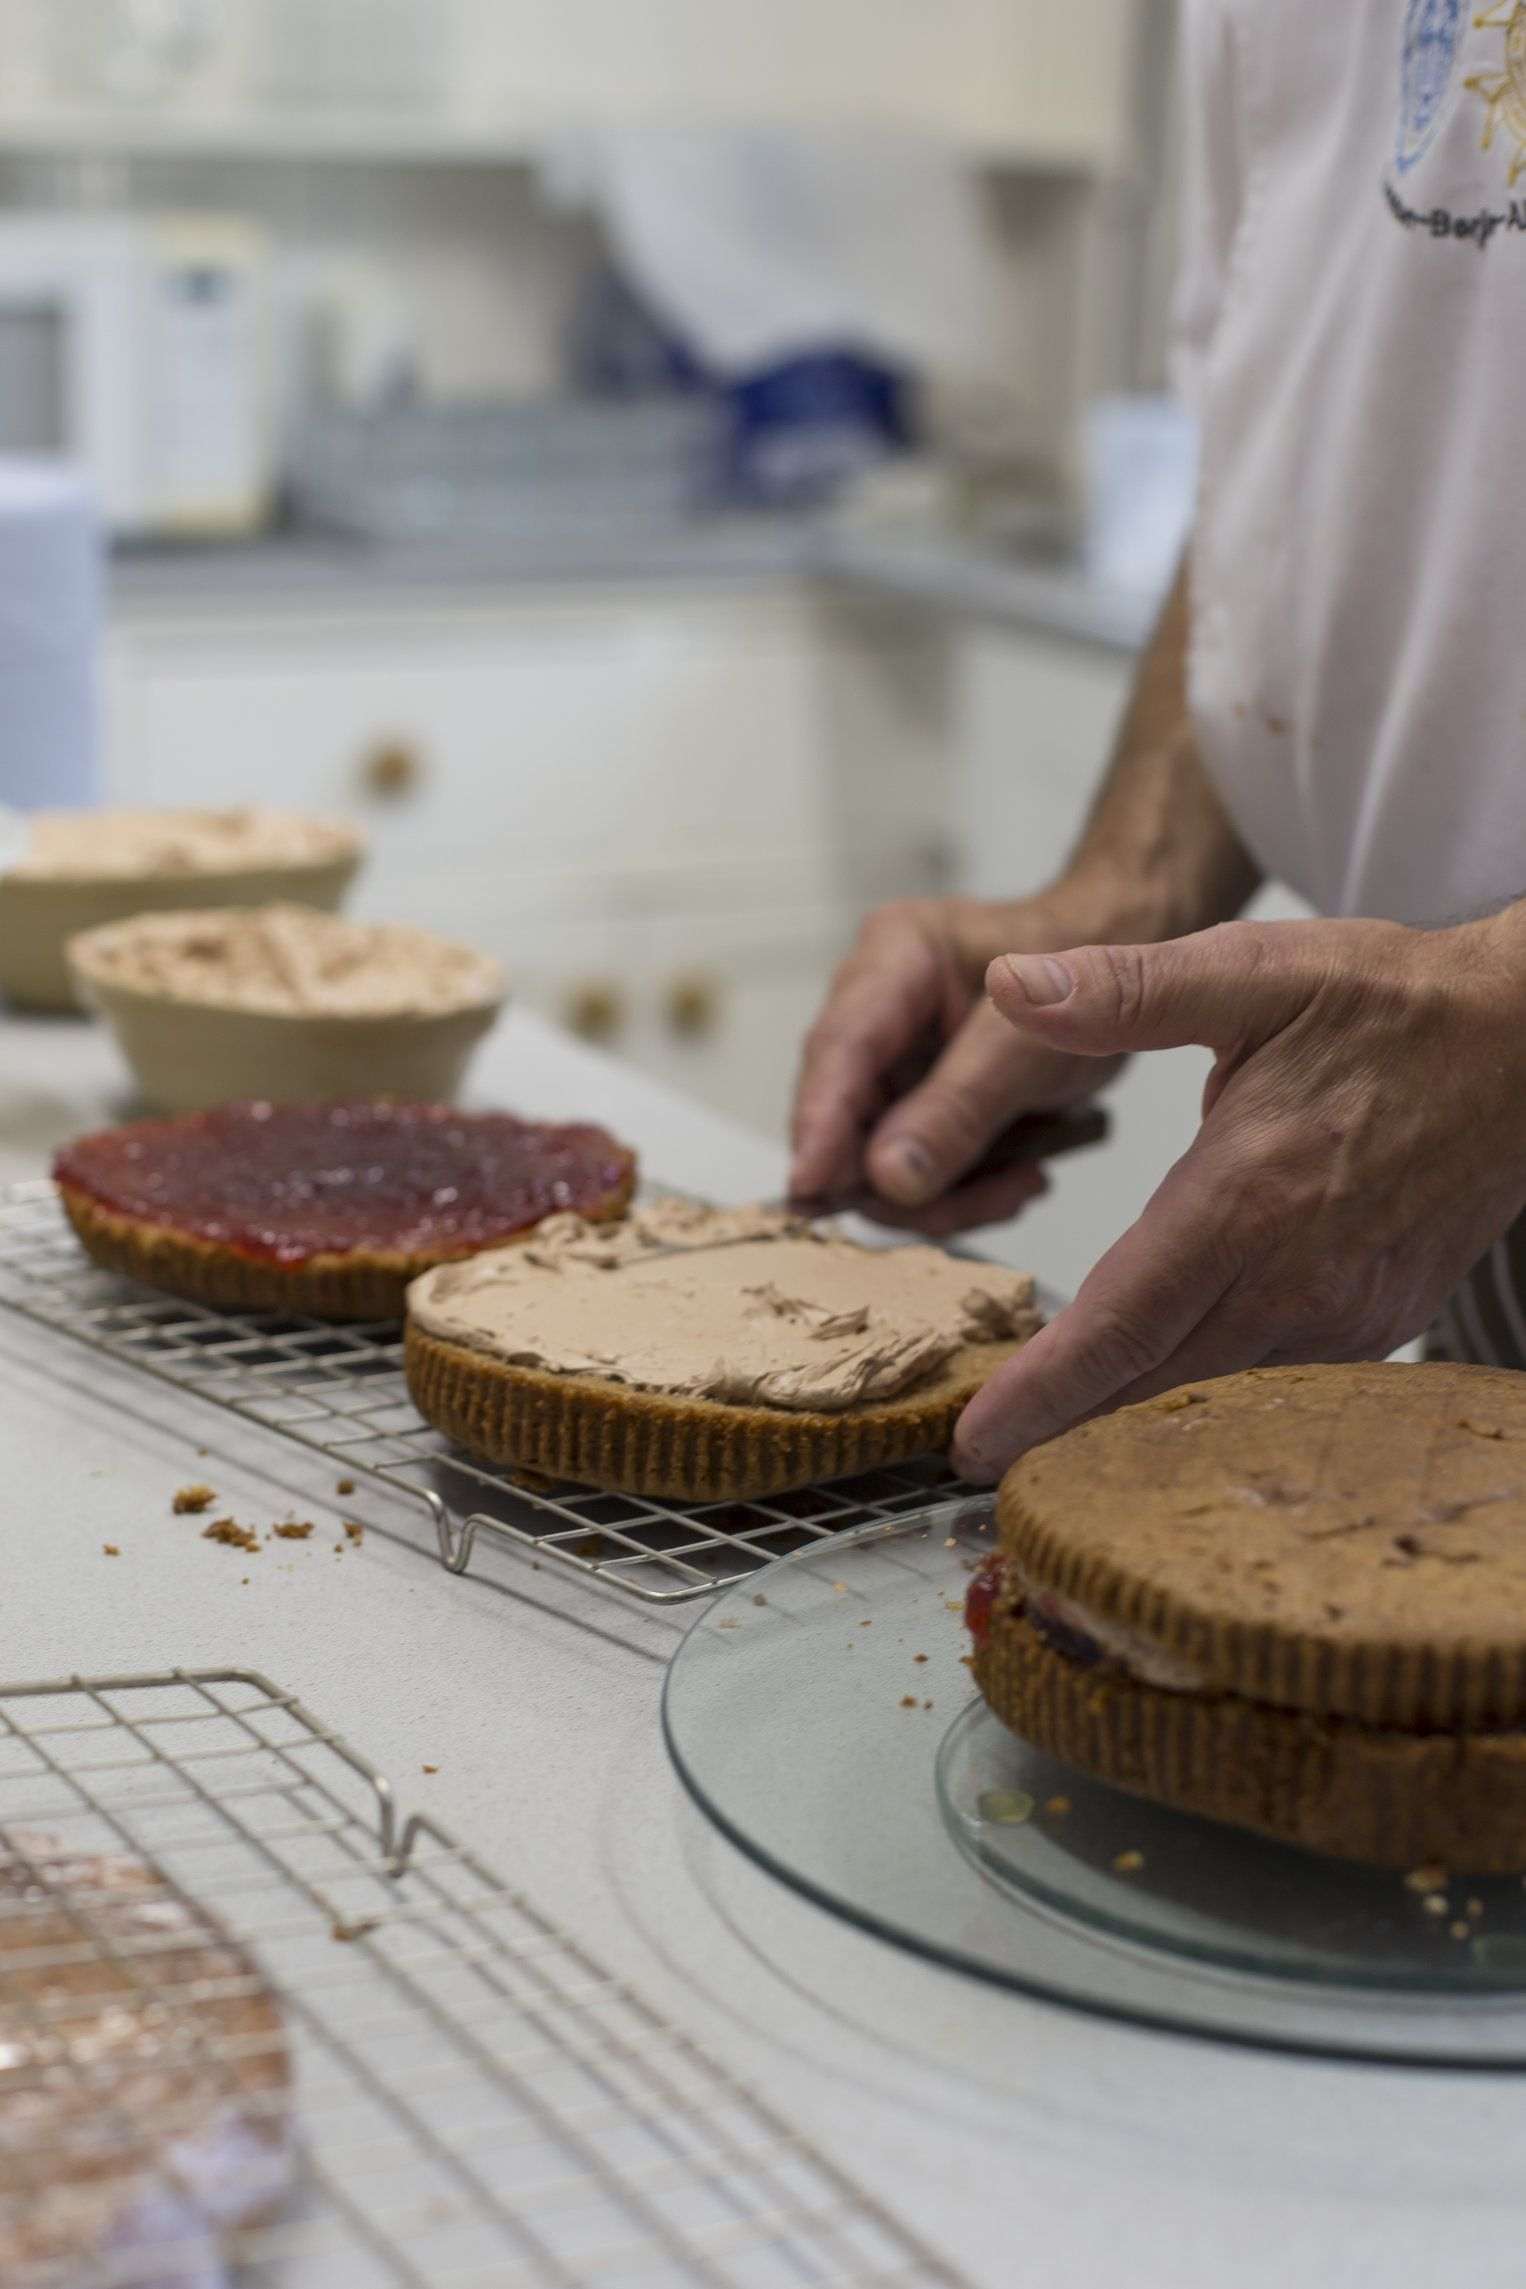 Cake assembly line. Our dedicated team puts together our delicious sweet treats #vegetarian #treat #cake #afternoontea